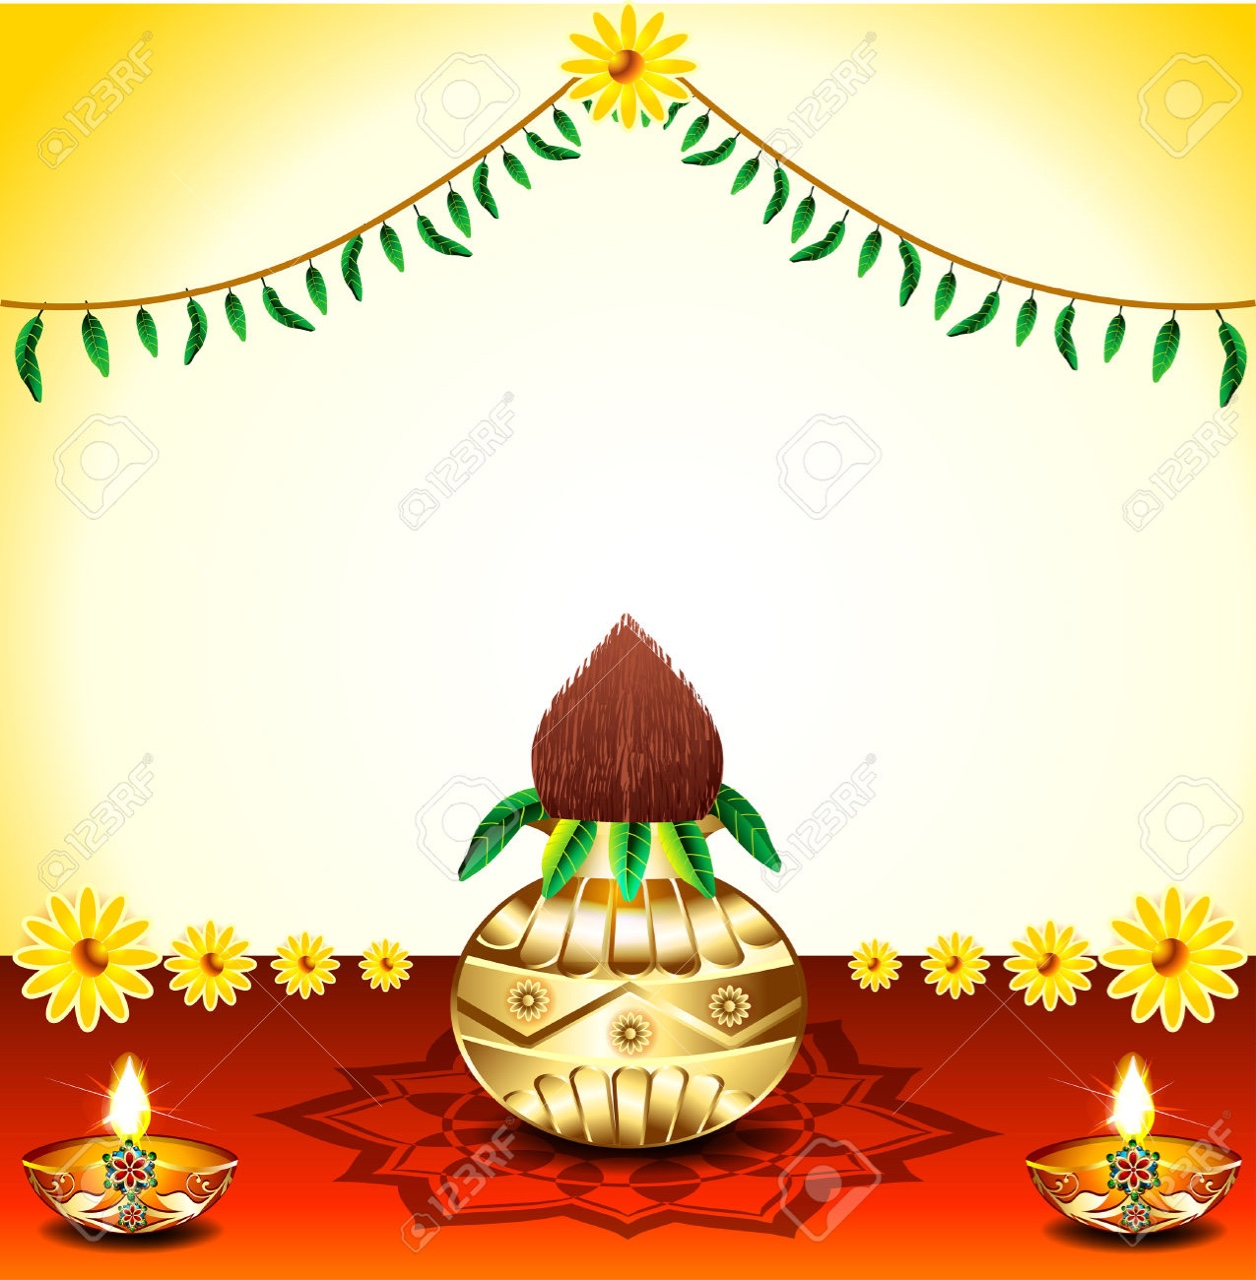 Festival clipart hinduism ThingLink  Remix of thingpic